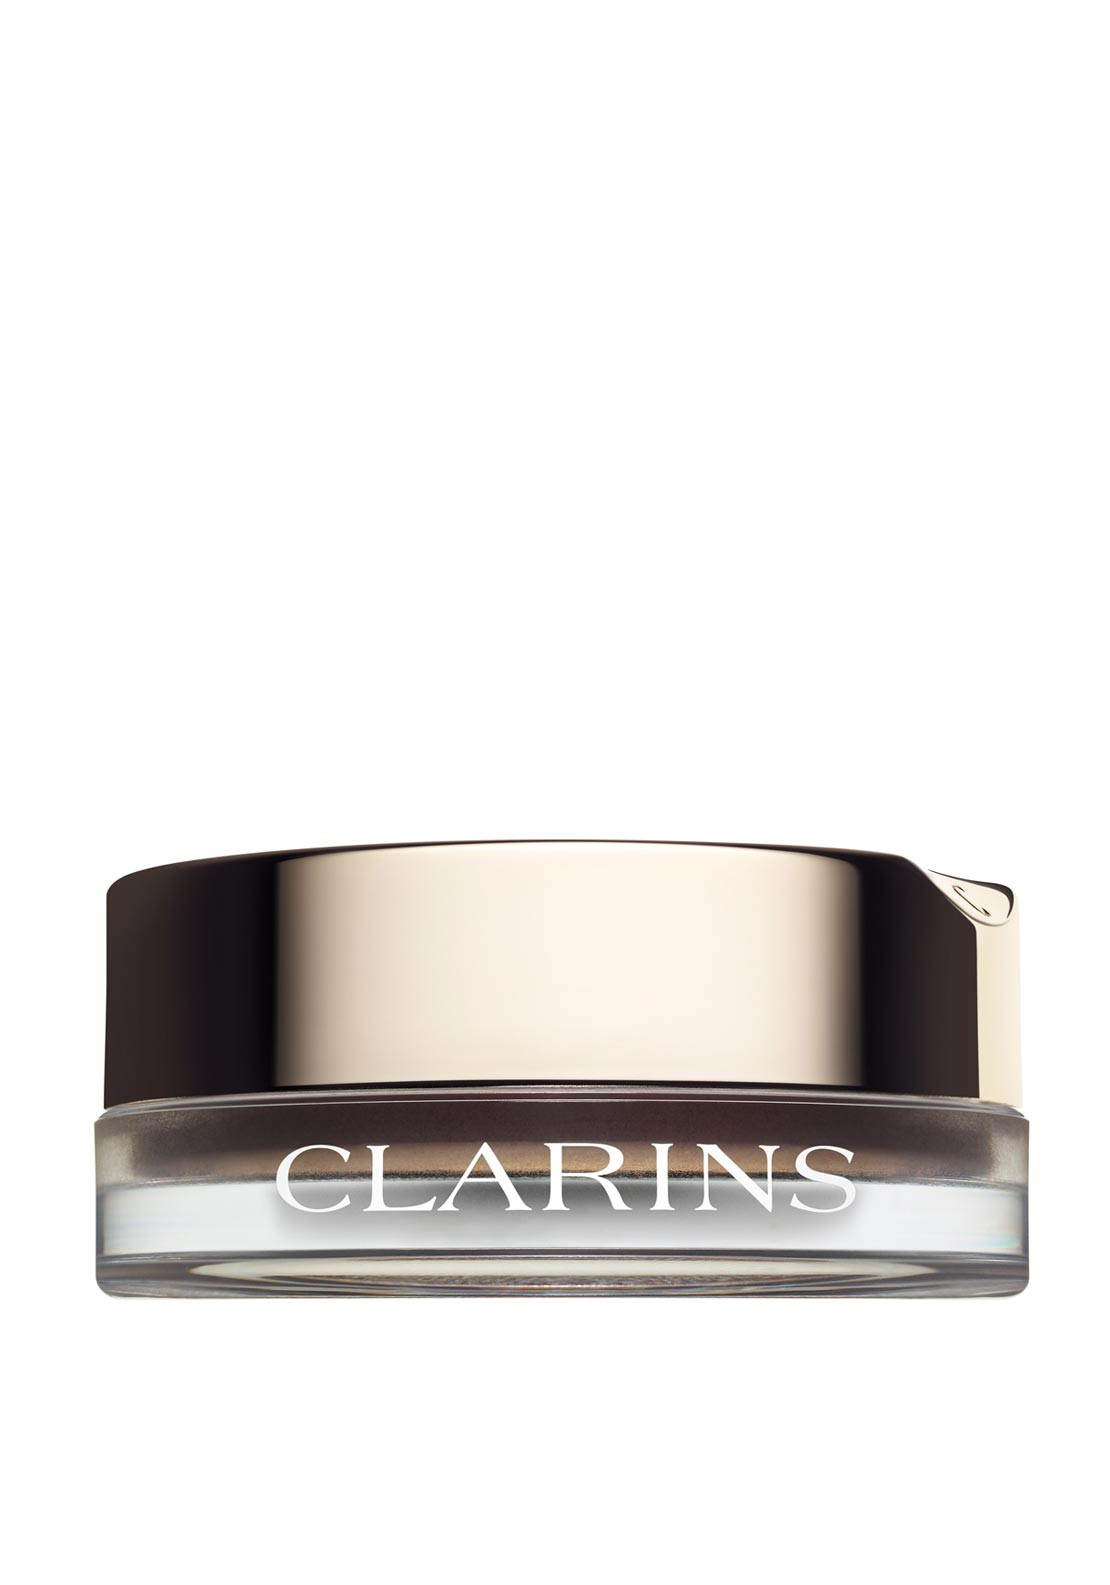 Clarins Cream-to-Powder Matte Eyeshadow, 01 Nude Beige